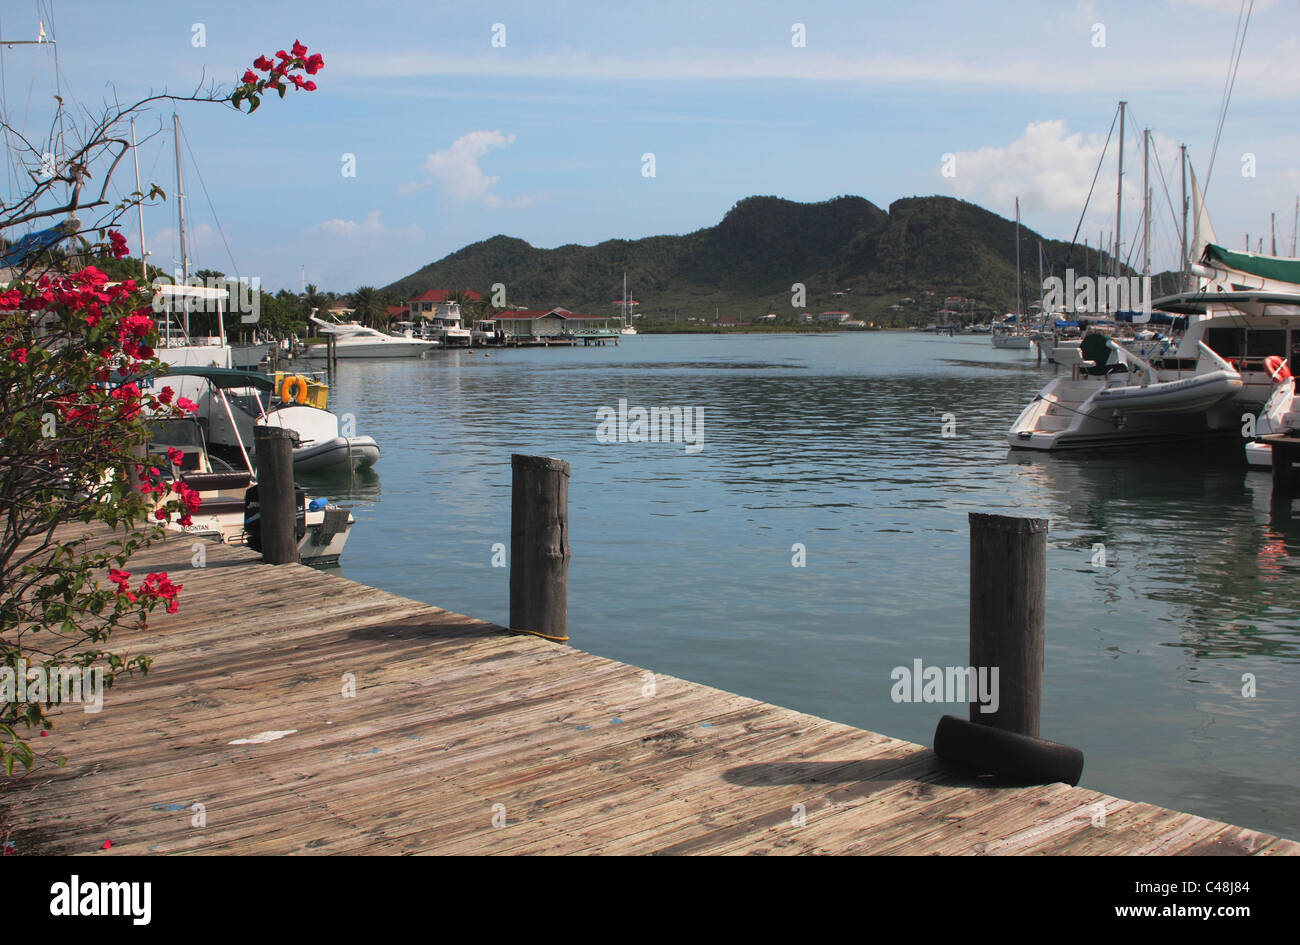 Muelle de madera, barcos y hill view, Jolly bay, antigua, West Indies Imagen De Stock